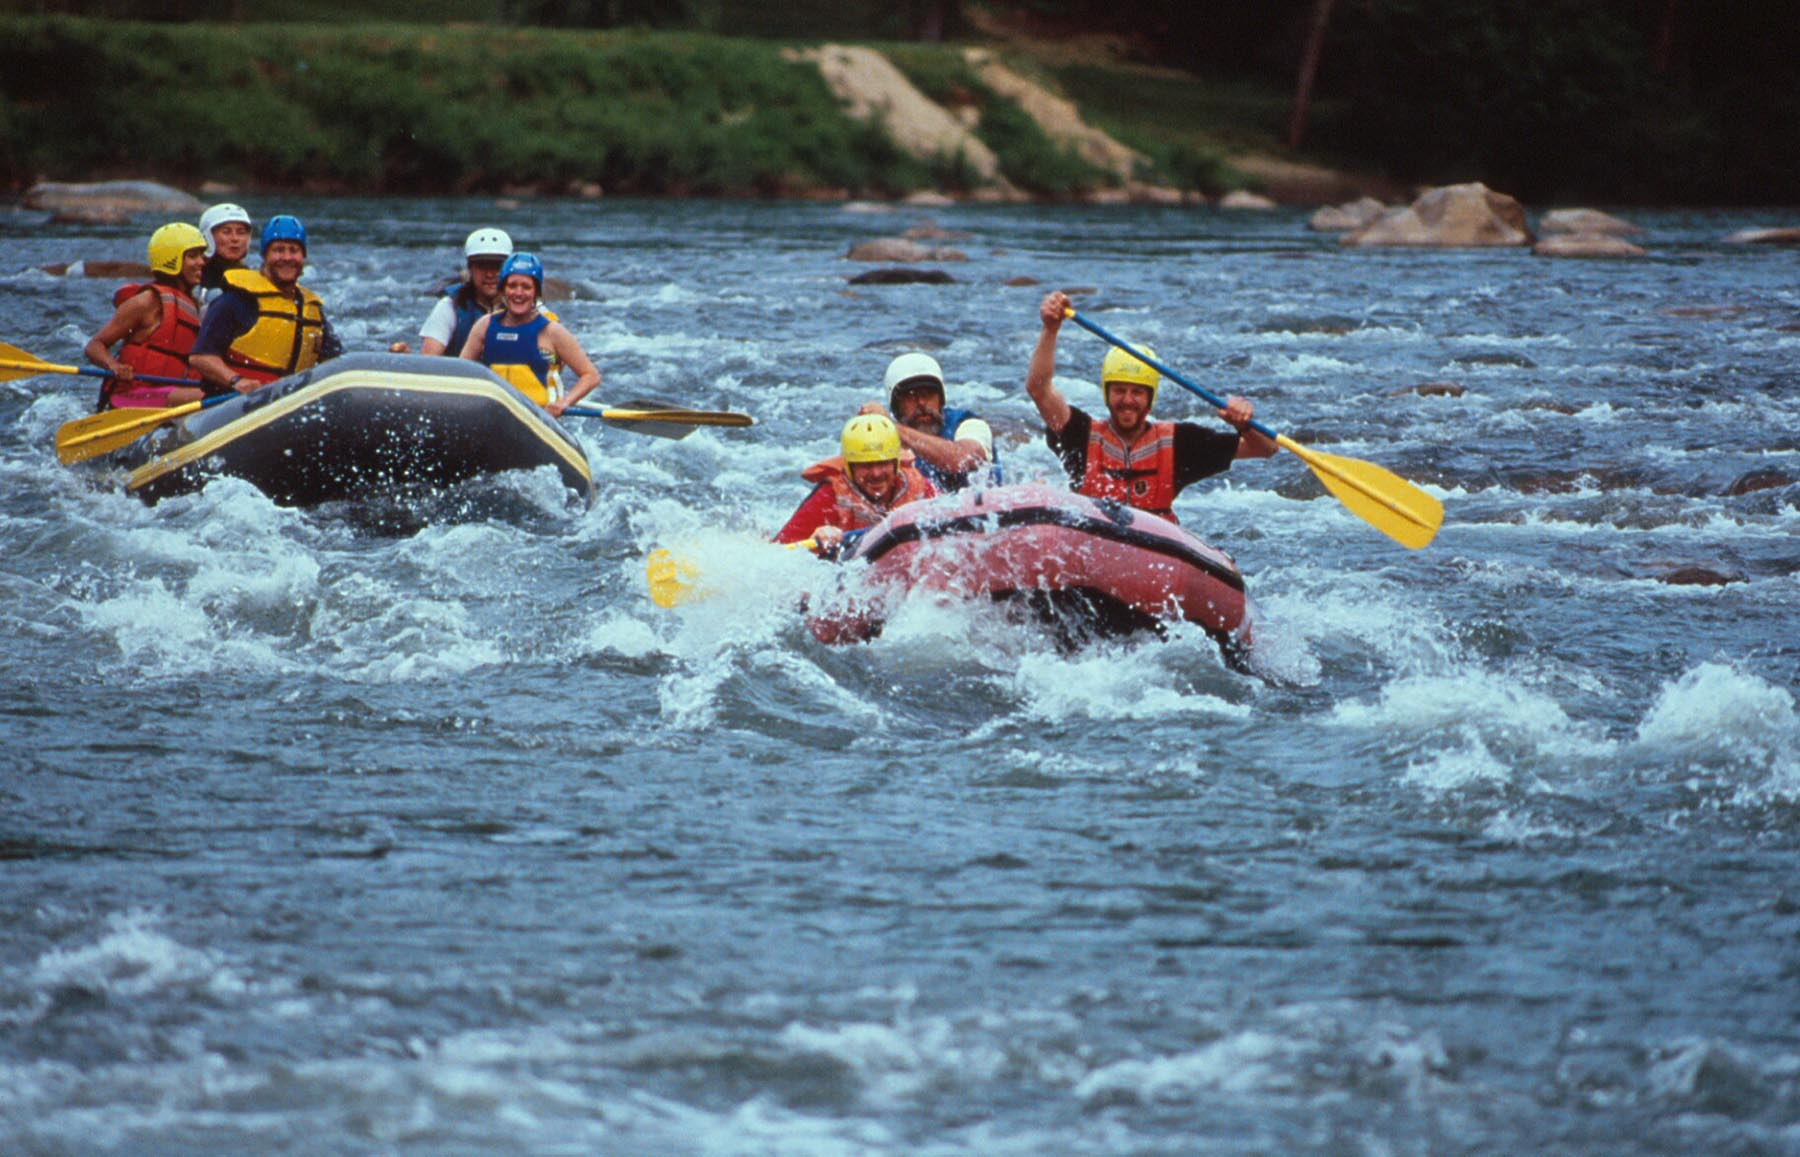 Whitewater Rafting Nolichucky River in TN